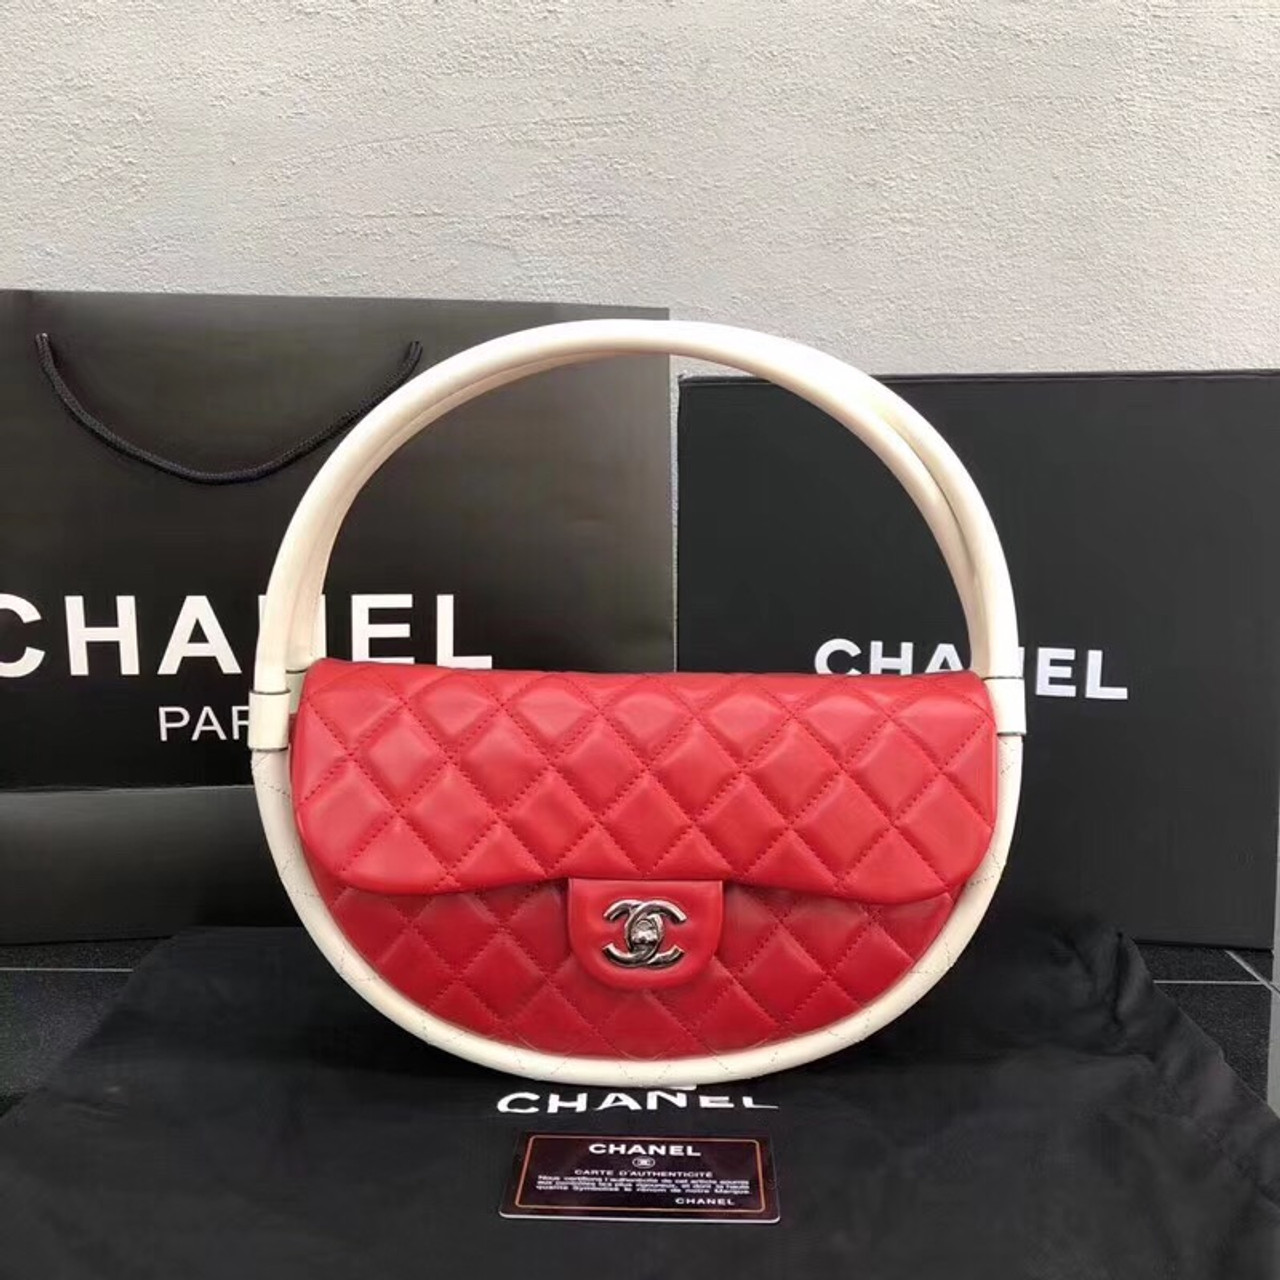 64ac134b3a59 Chanel Limited Edition Art Piece Hula Hoop Runway Bag , 2013 Red & White